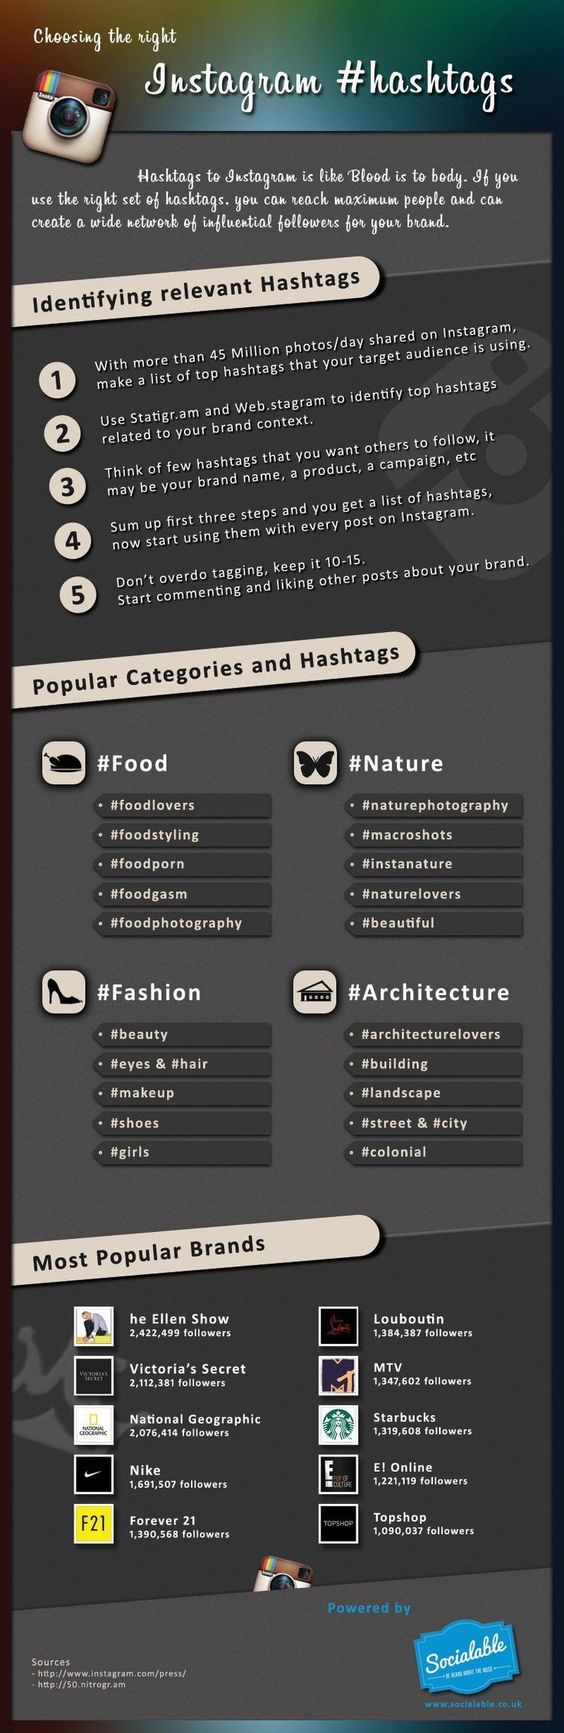 With this Infographic we want to show you how choosing the right hashtags to use in Instagram can get you more likes and followers which will lead to sales.